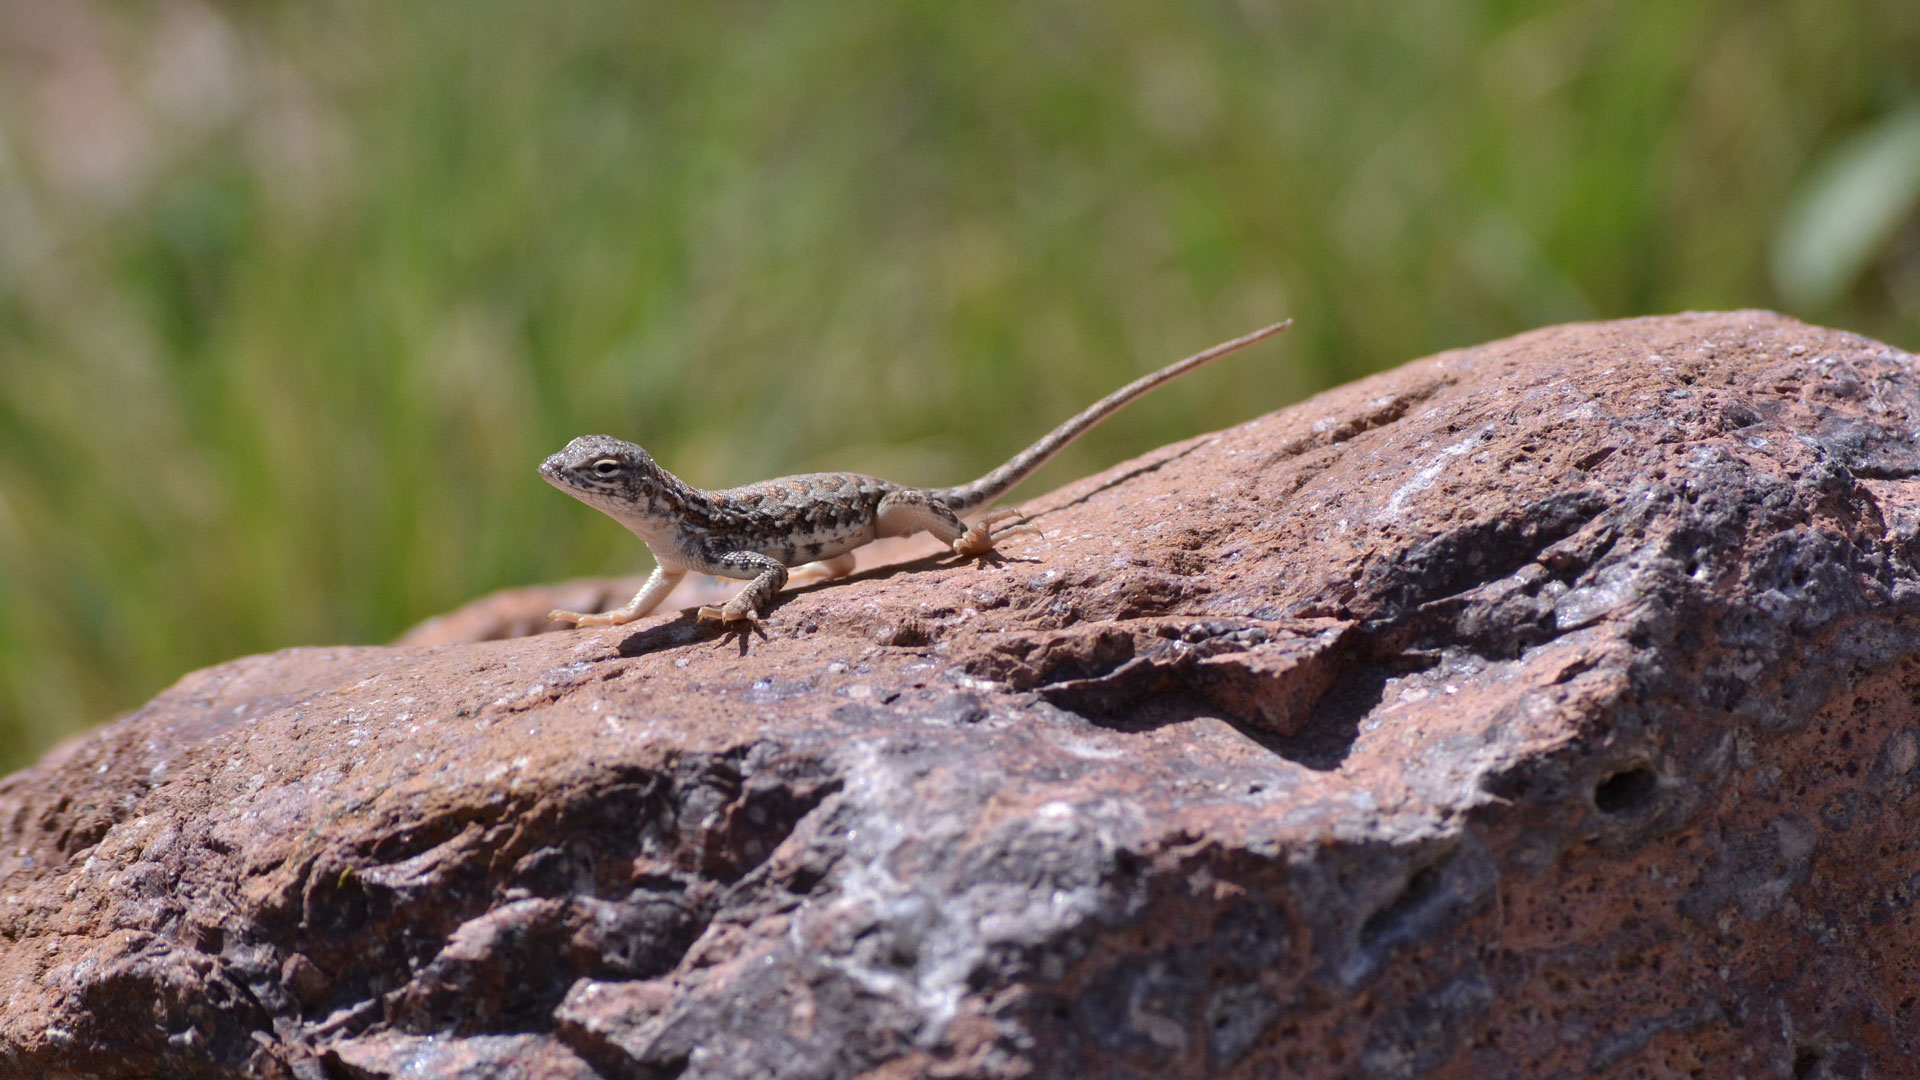 Lesser Earless Lizards